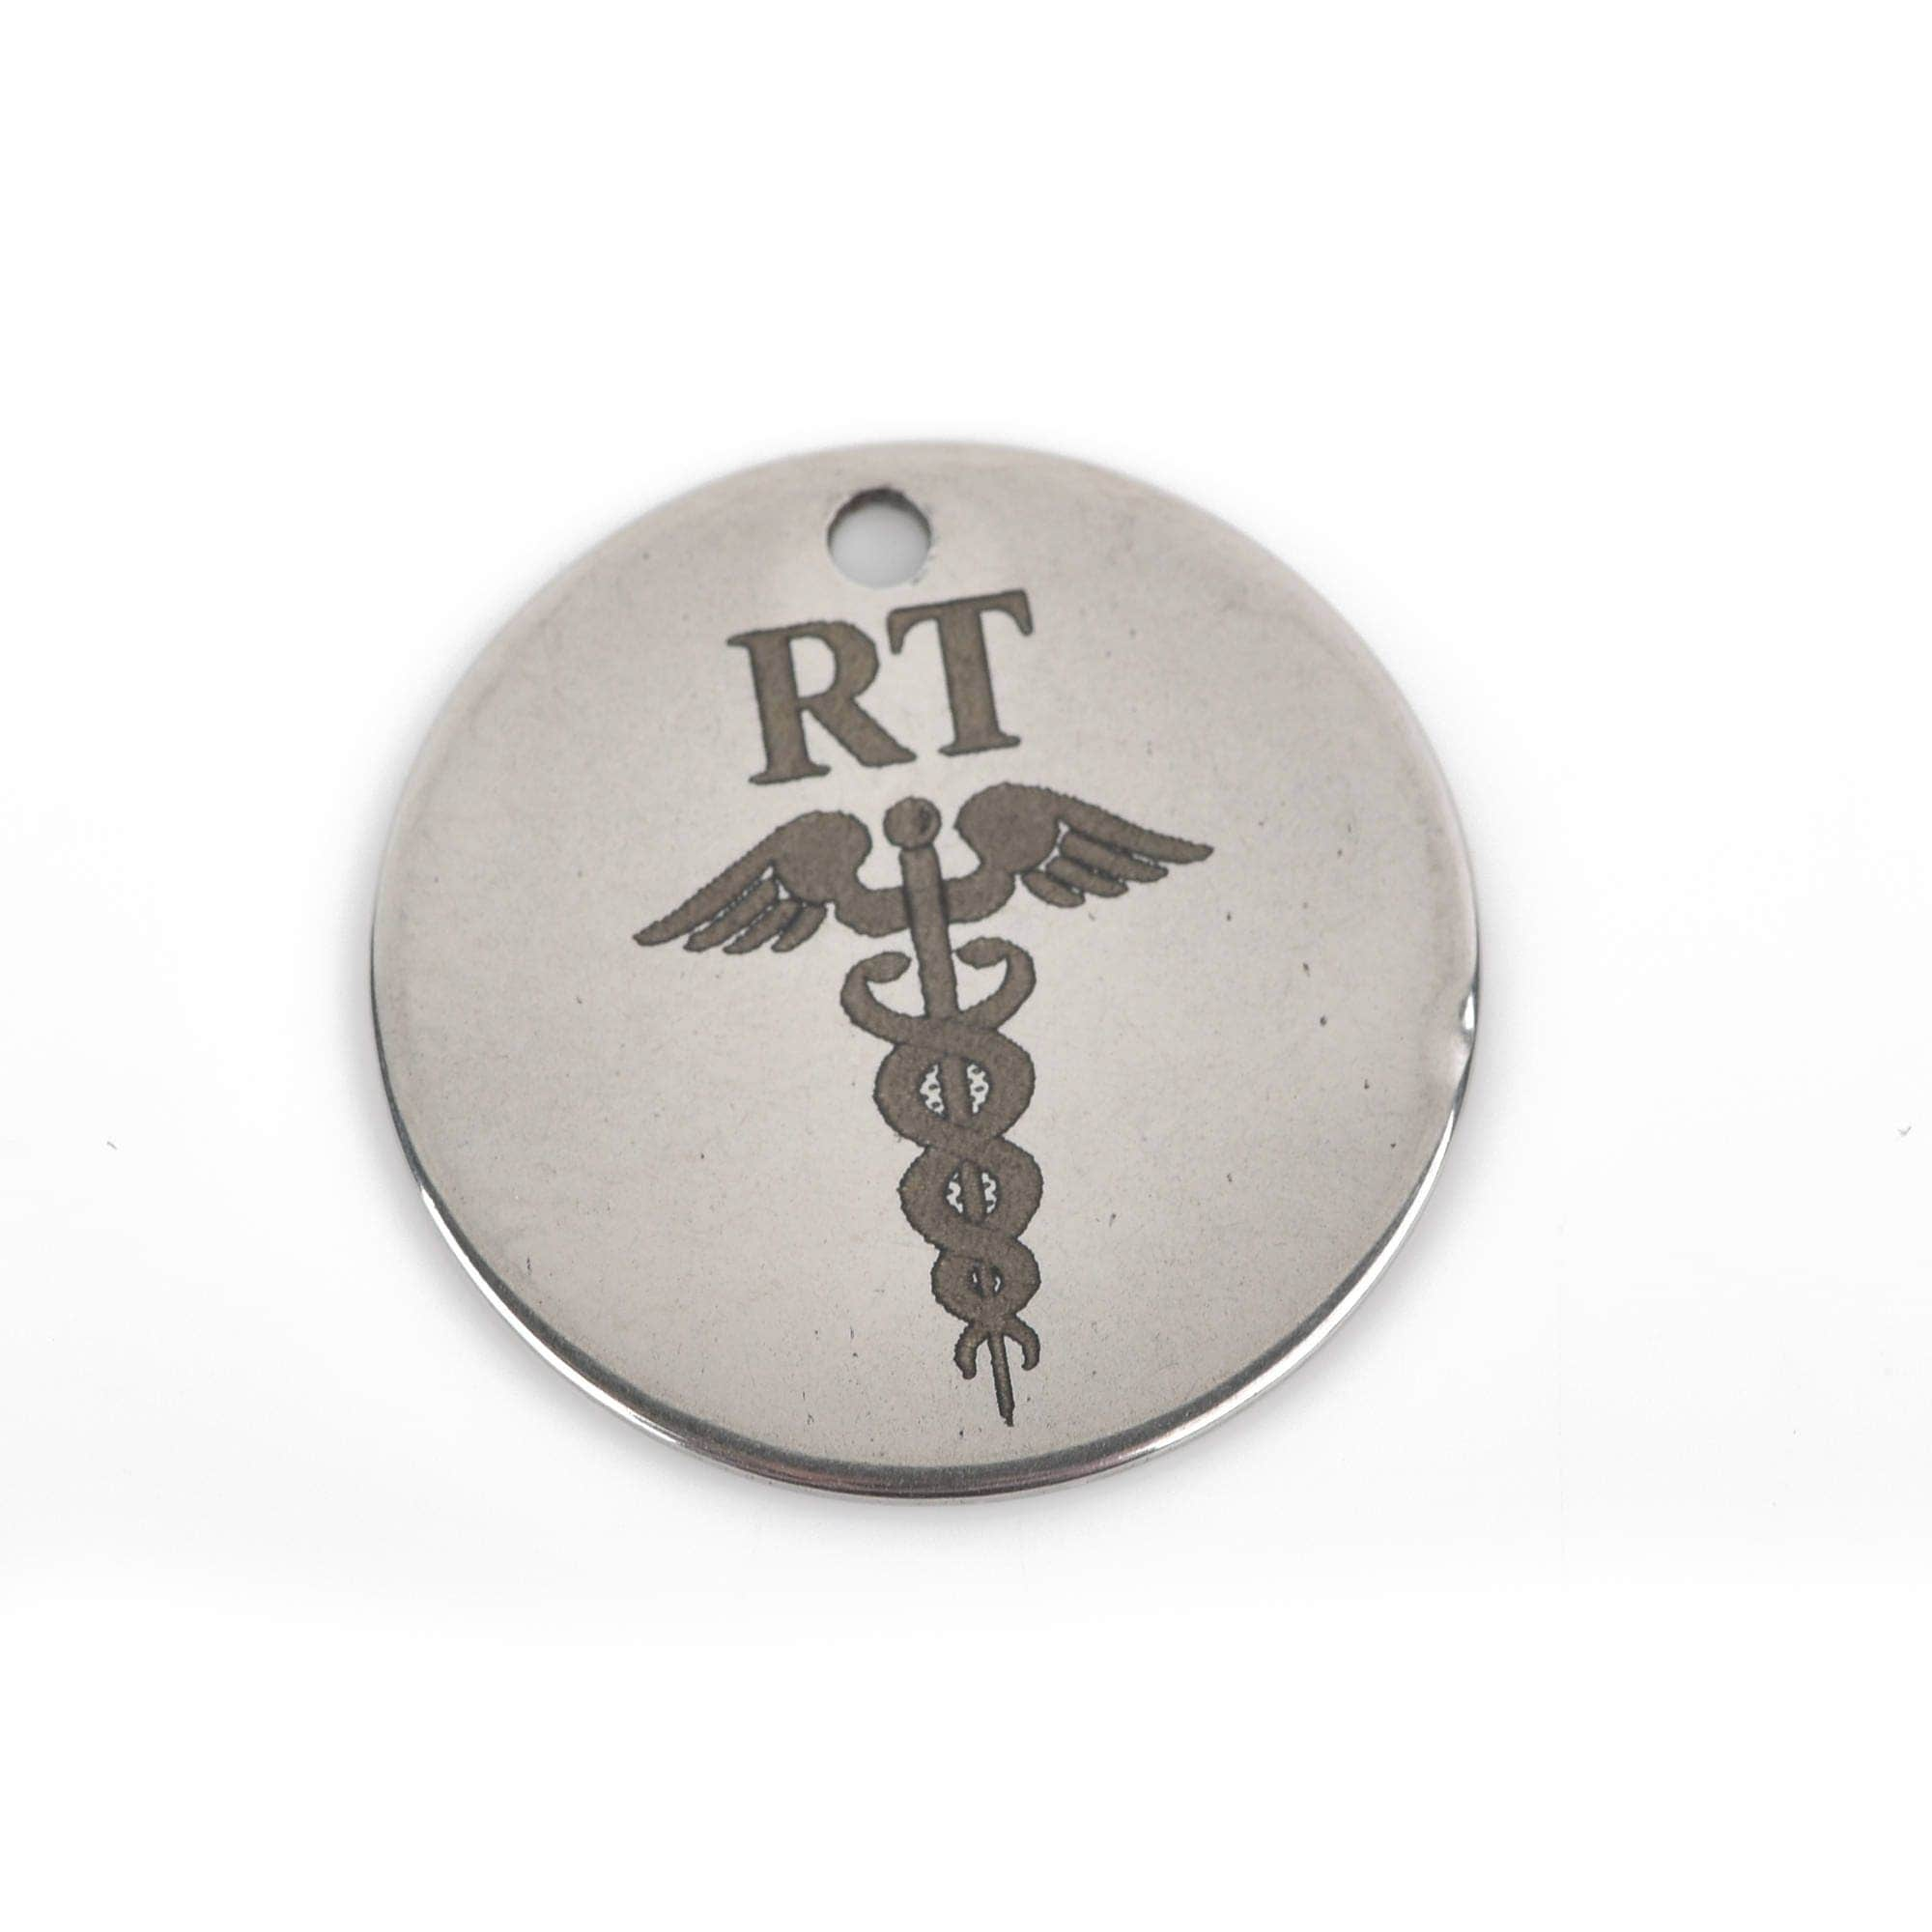 5 respiratory therapist charms silver stainless steel rt charms gallery photo gallery photo gallery photo gallery photo buycottarizona